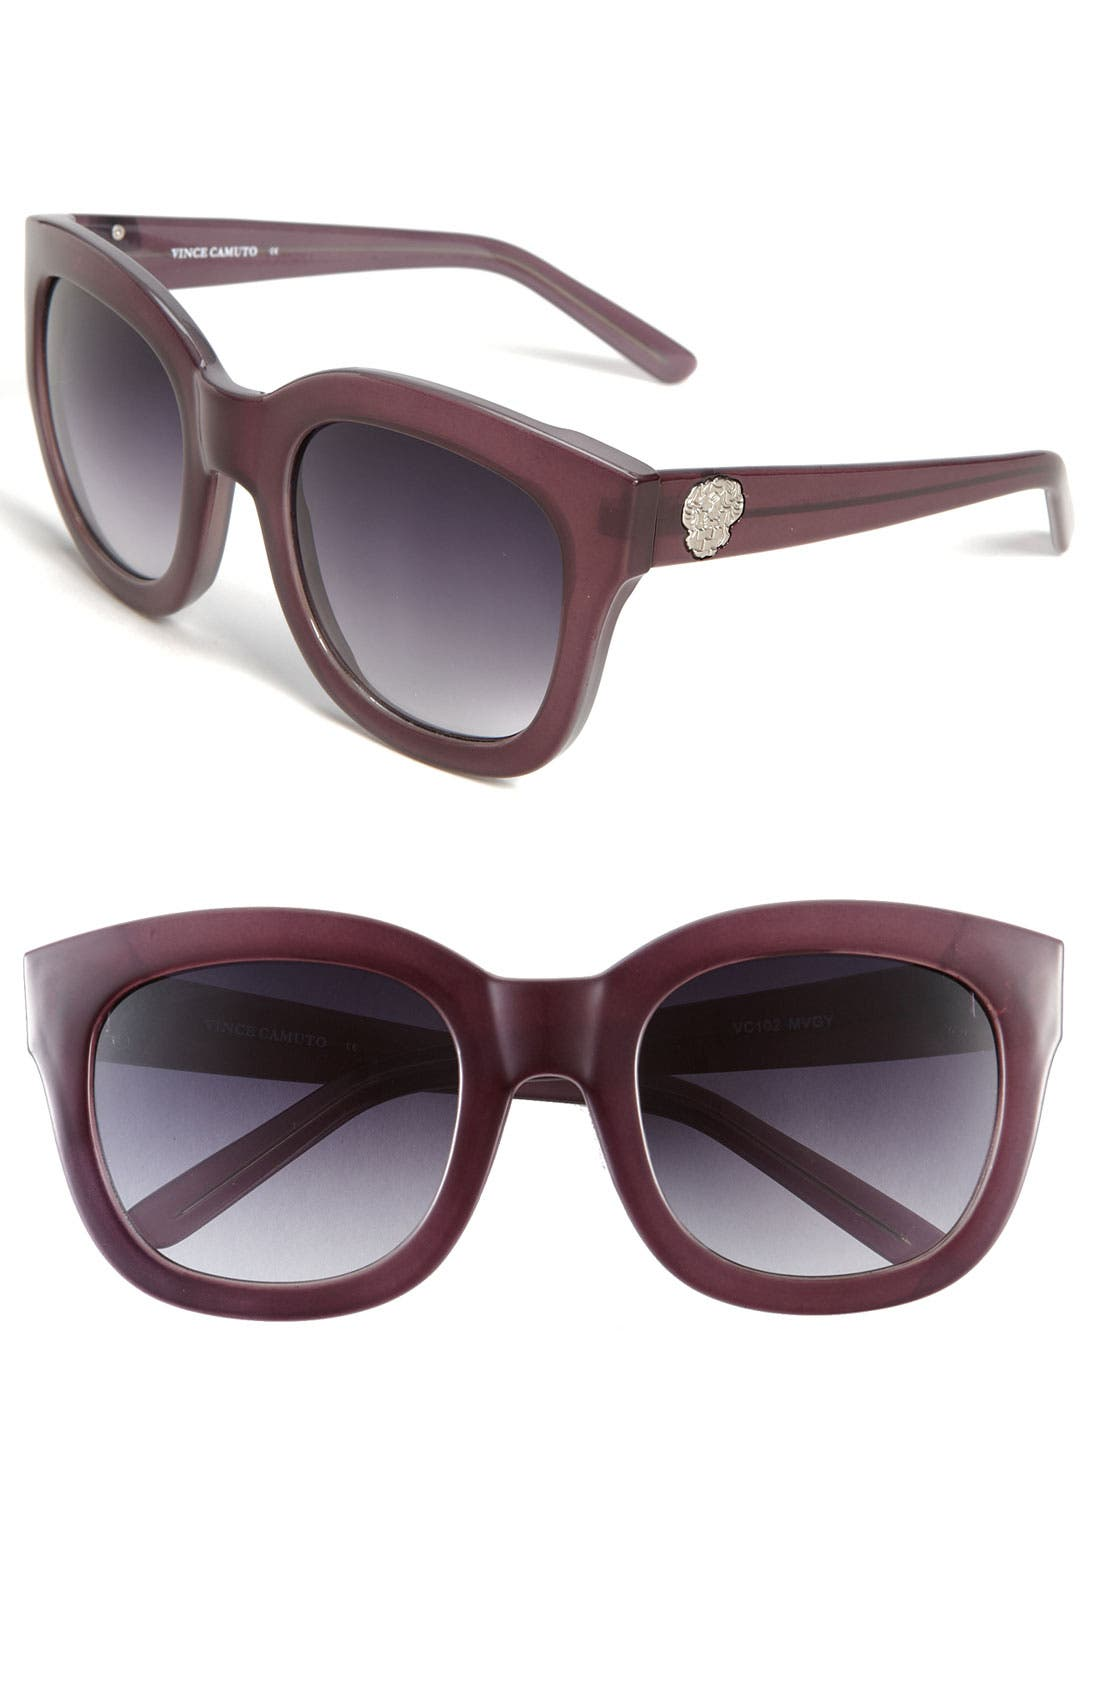 Main Image - Vince Camuto 54mm Oversized Cat Eye Sunglasses